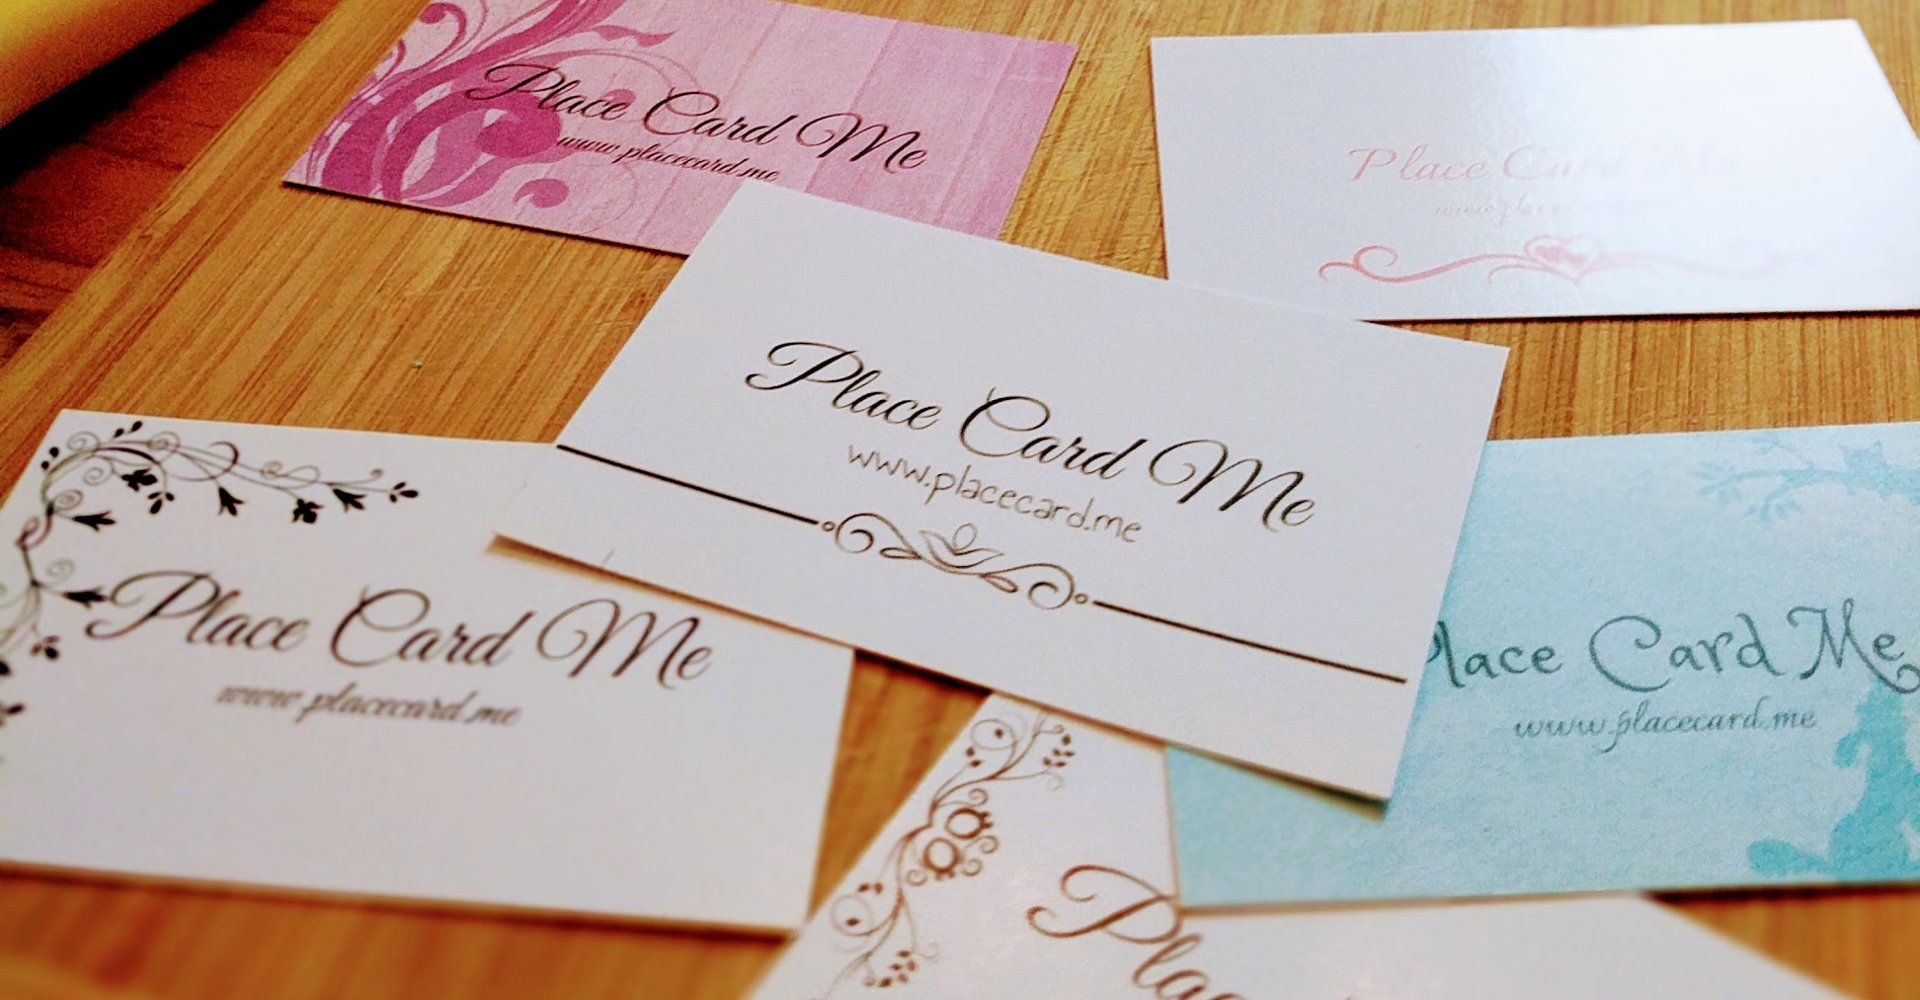 The Definitive Guide To Wedding Place Cards Place Card Me Inside Celebrate It Templ Free Place Card Template Place Card Template Wedding Place Card Templates